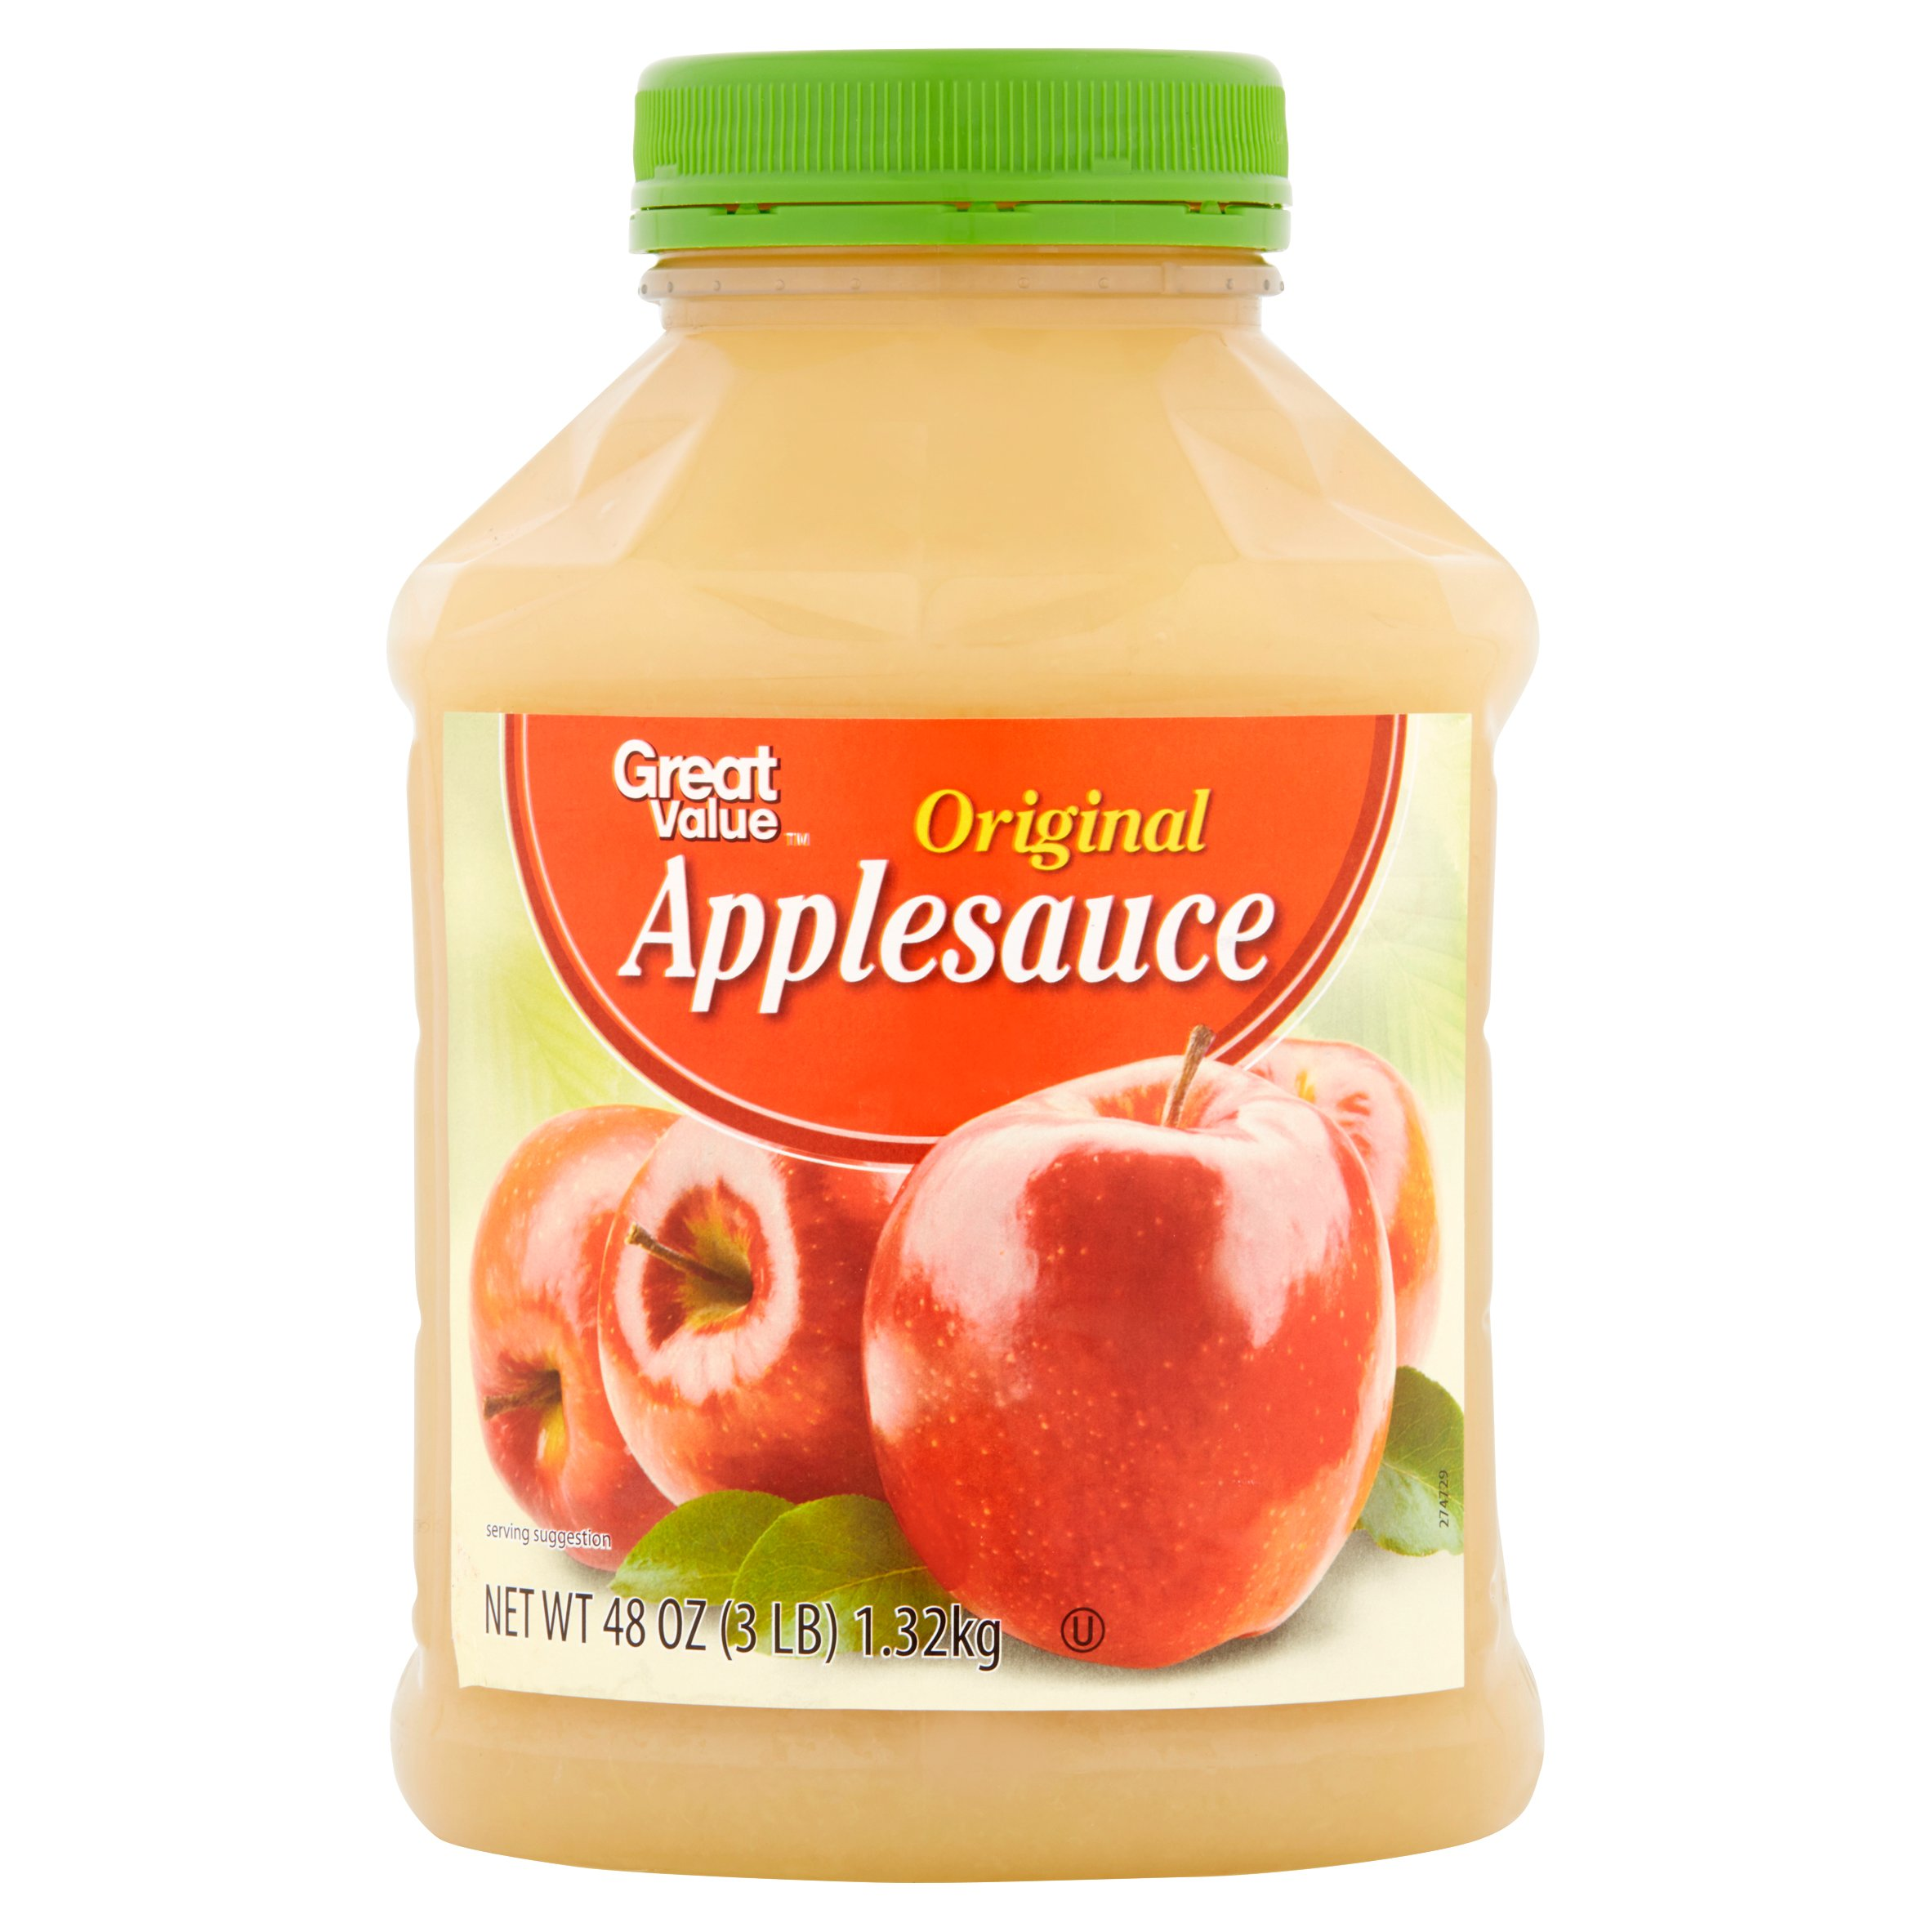 Great Value Original Applesauce, 48 oz